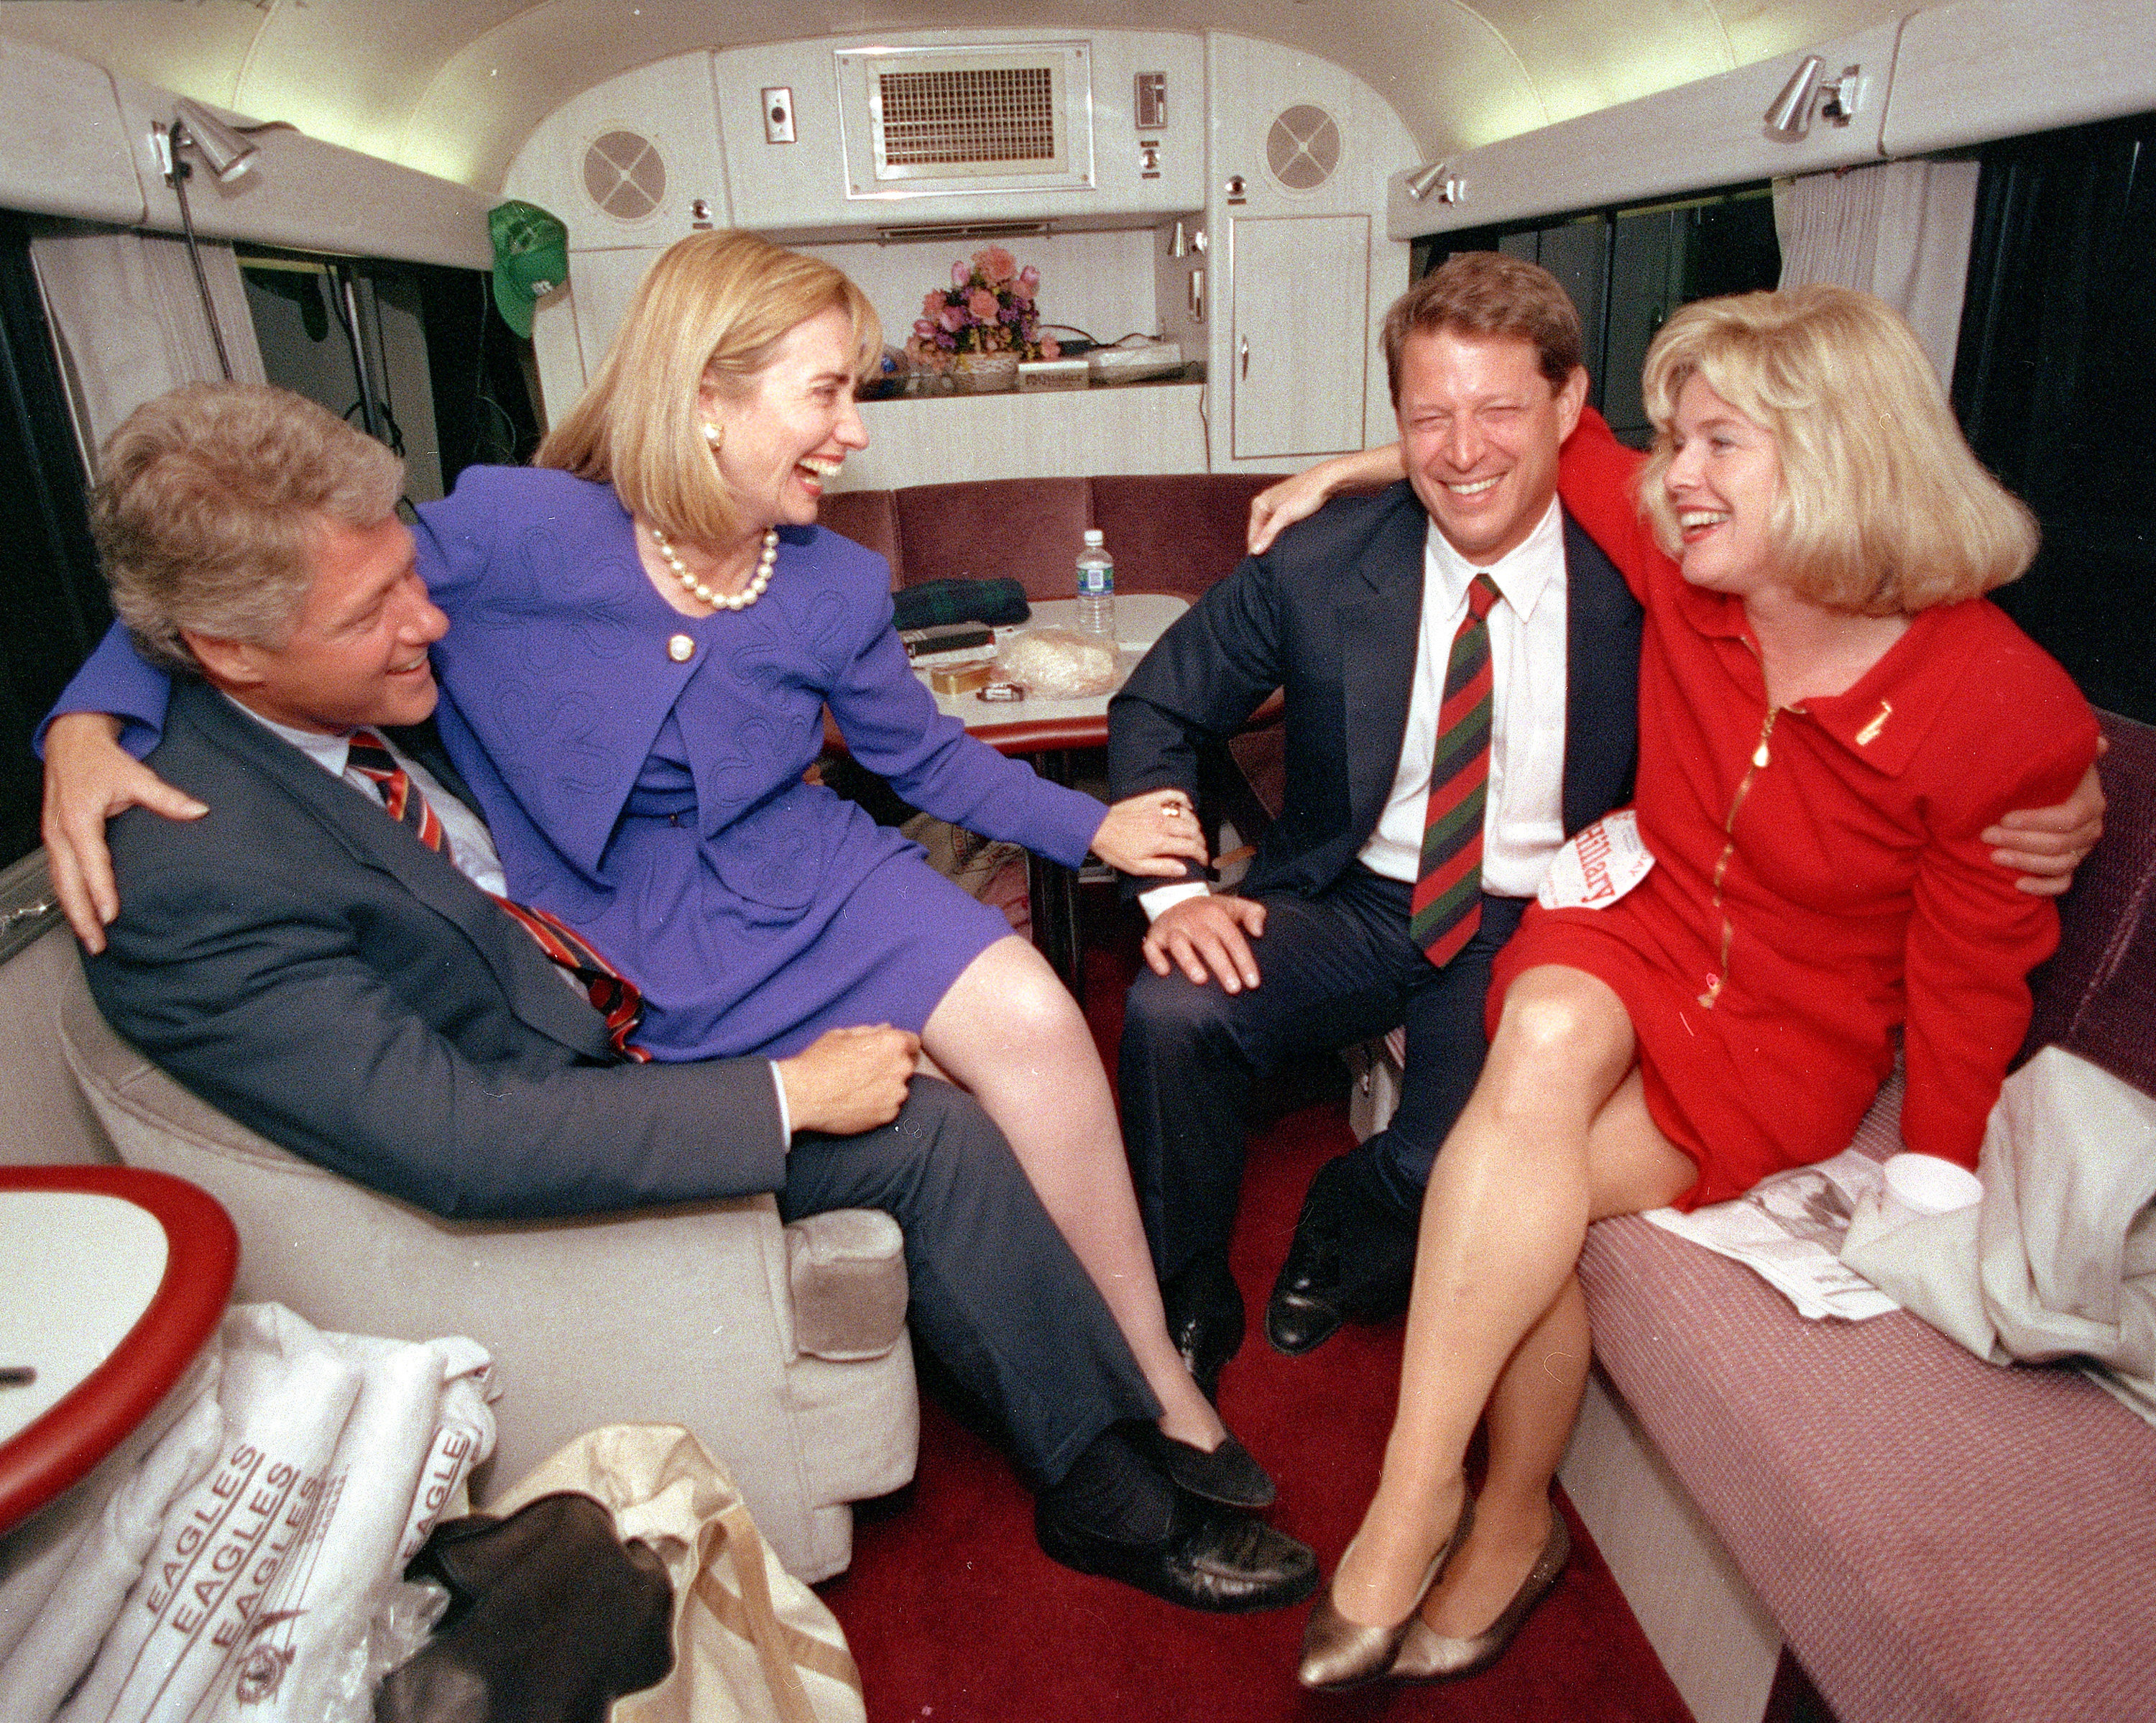 Hillary Rodham Clinton sits on the lap of her husband, democratic presidential candidate Bill Clinton left, as she jokes with vice presidential candidate Al Gore and his wife, Tipper, during a brief rest on their bus in Durham, N.C., on Oct. 26, 1992.